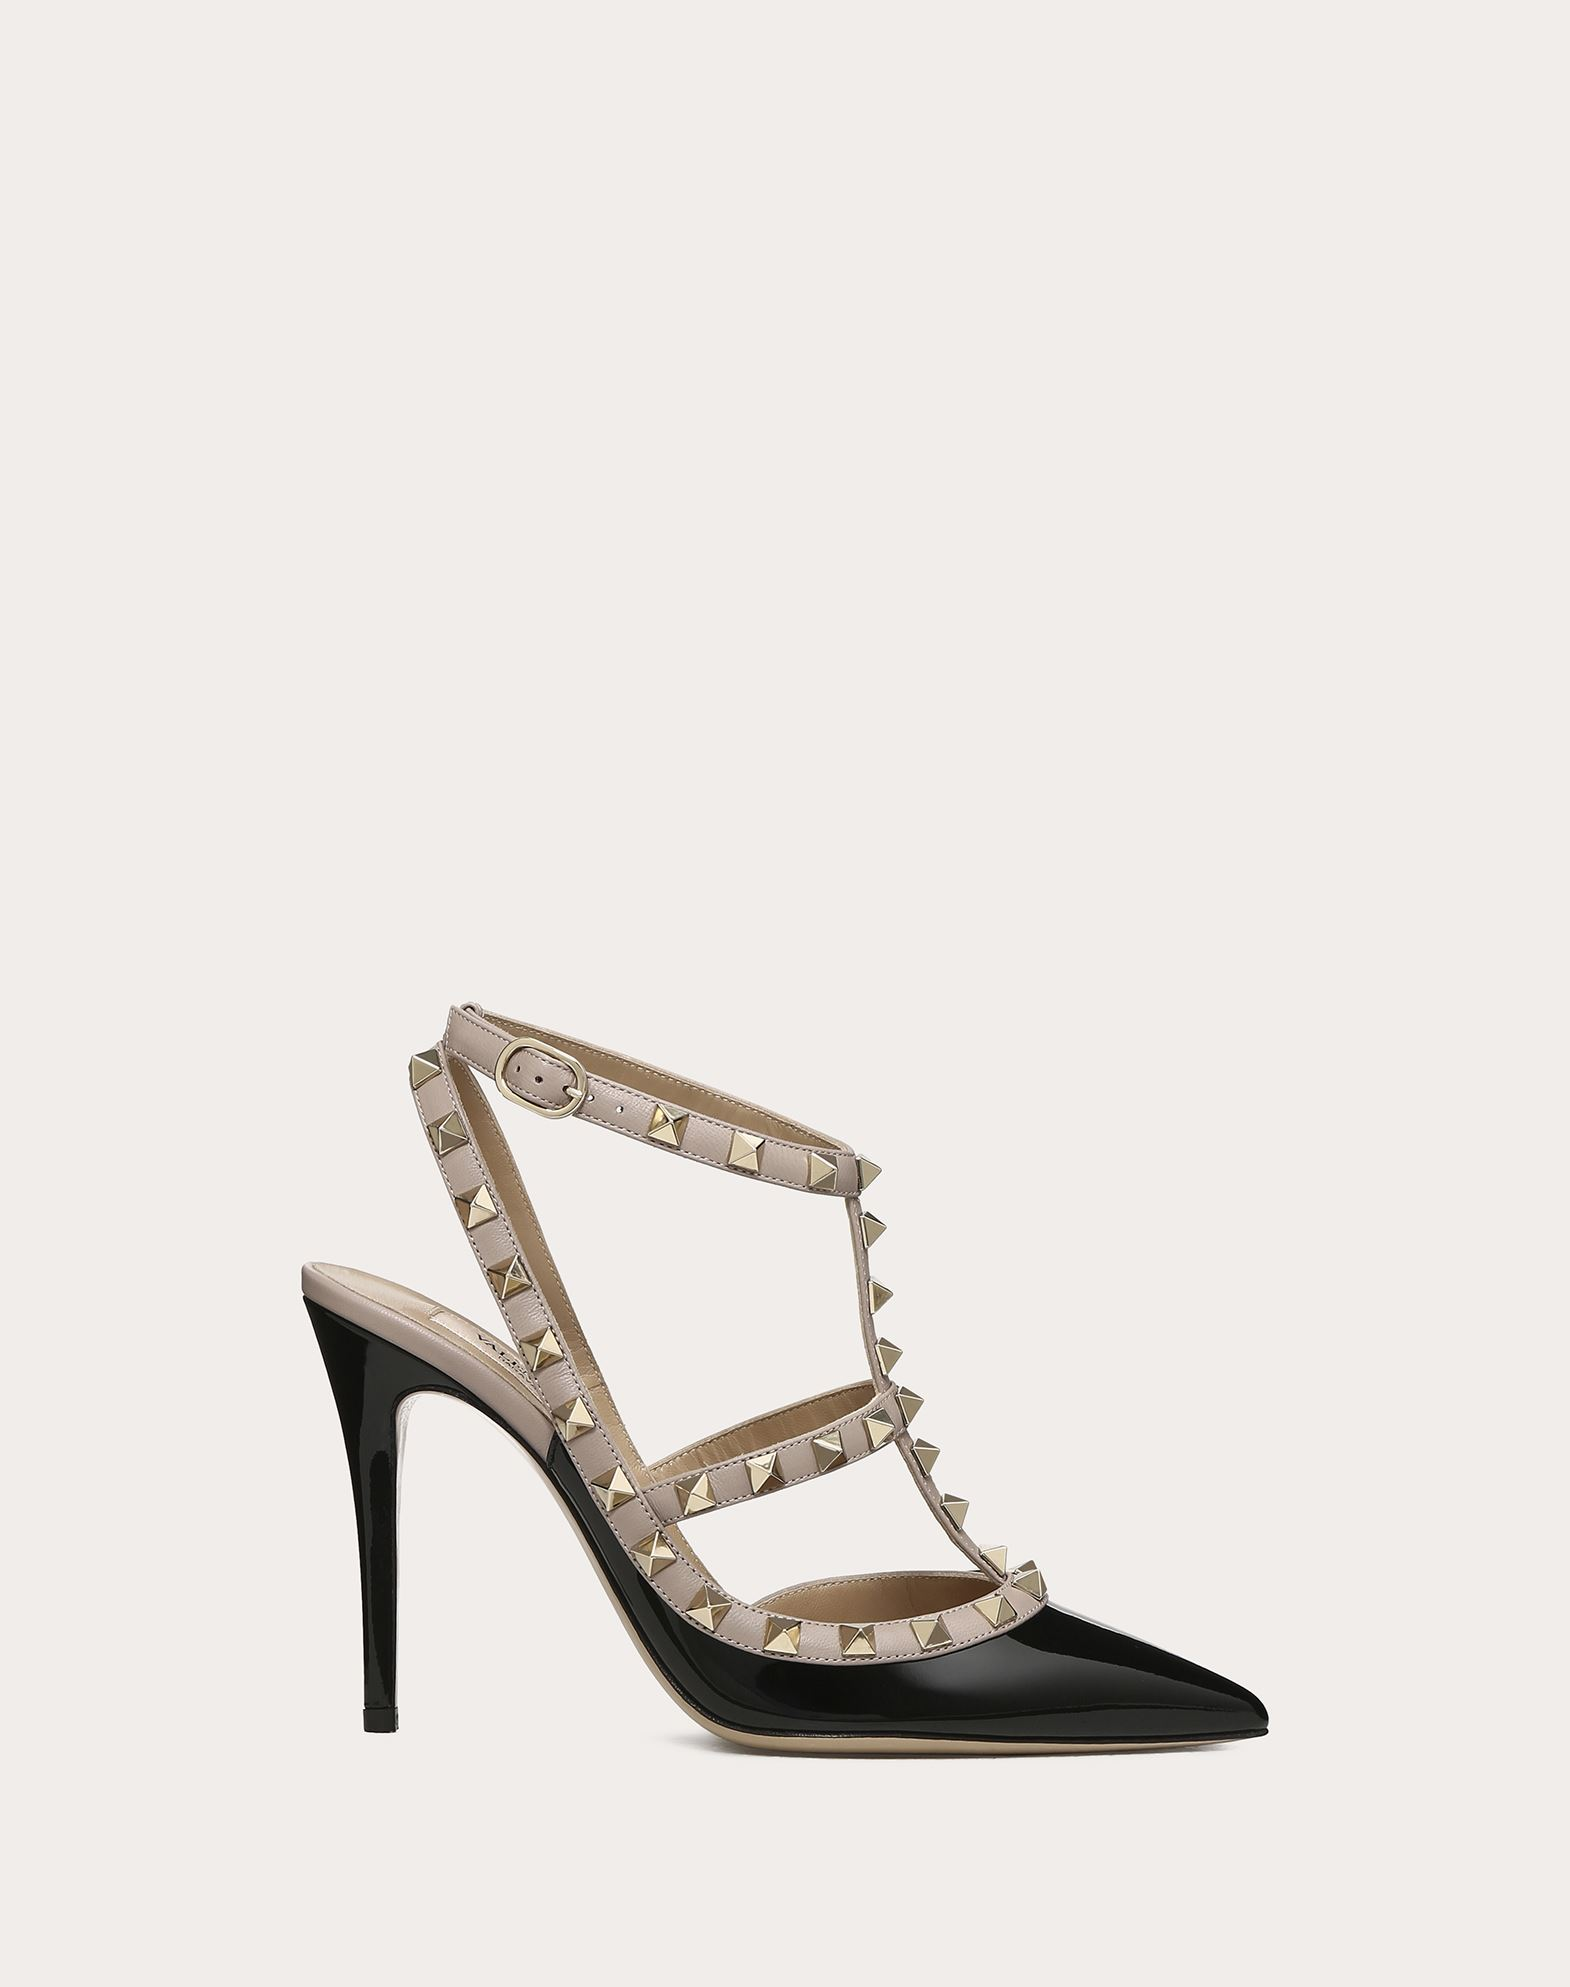 Patent Rockstud caged Pump 100mm